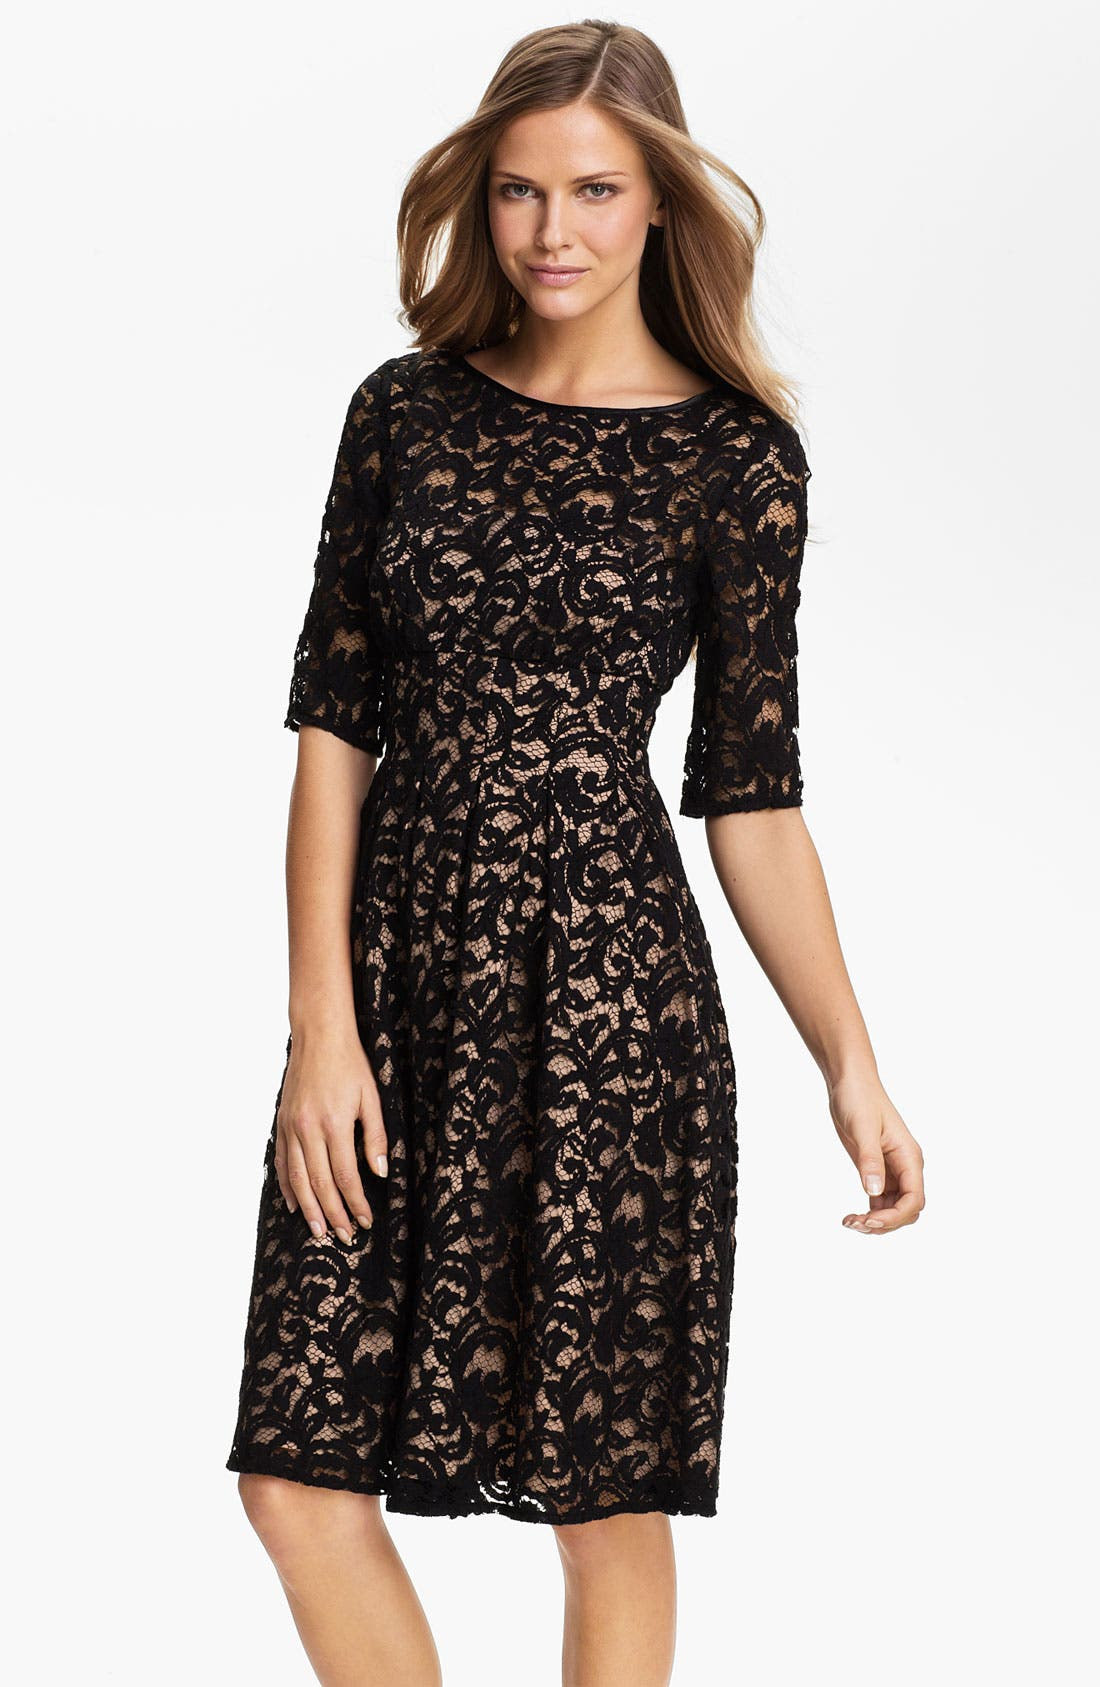 Alternate Image 1 Selected - Adrianna Papell Lace Overlay Fit & Flare Dress (Regular & Petite)